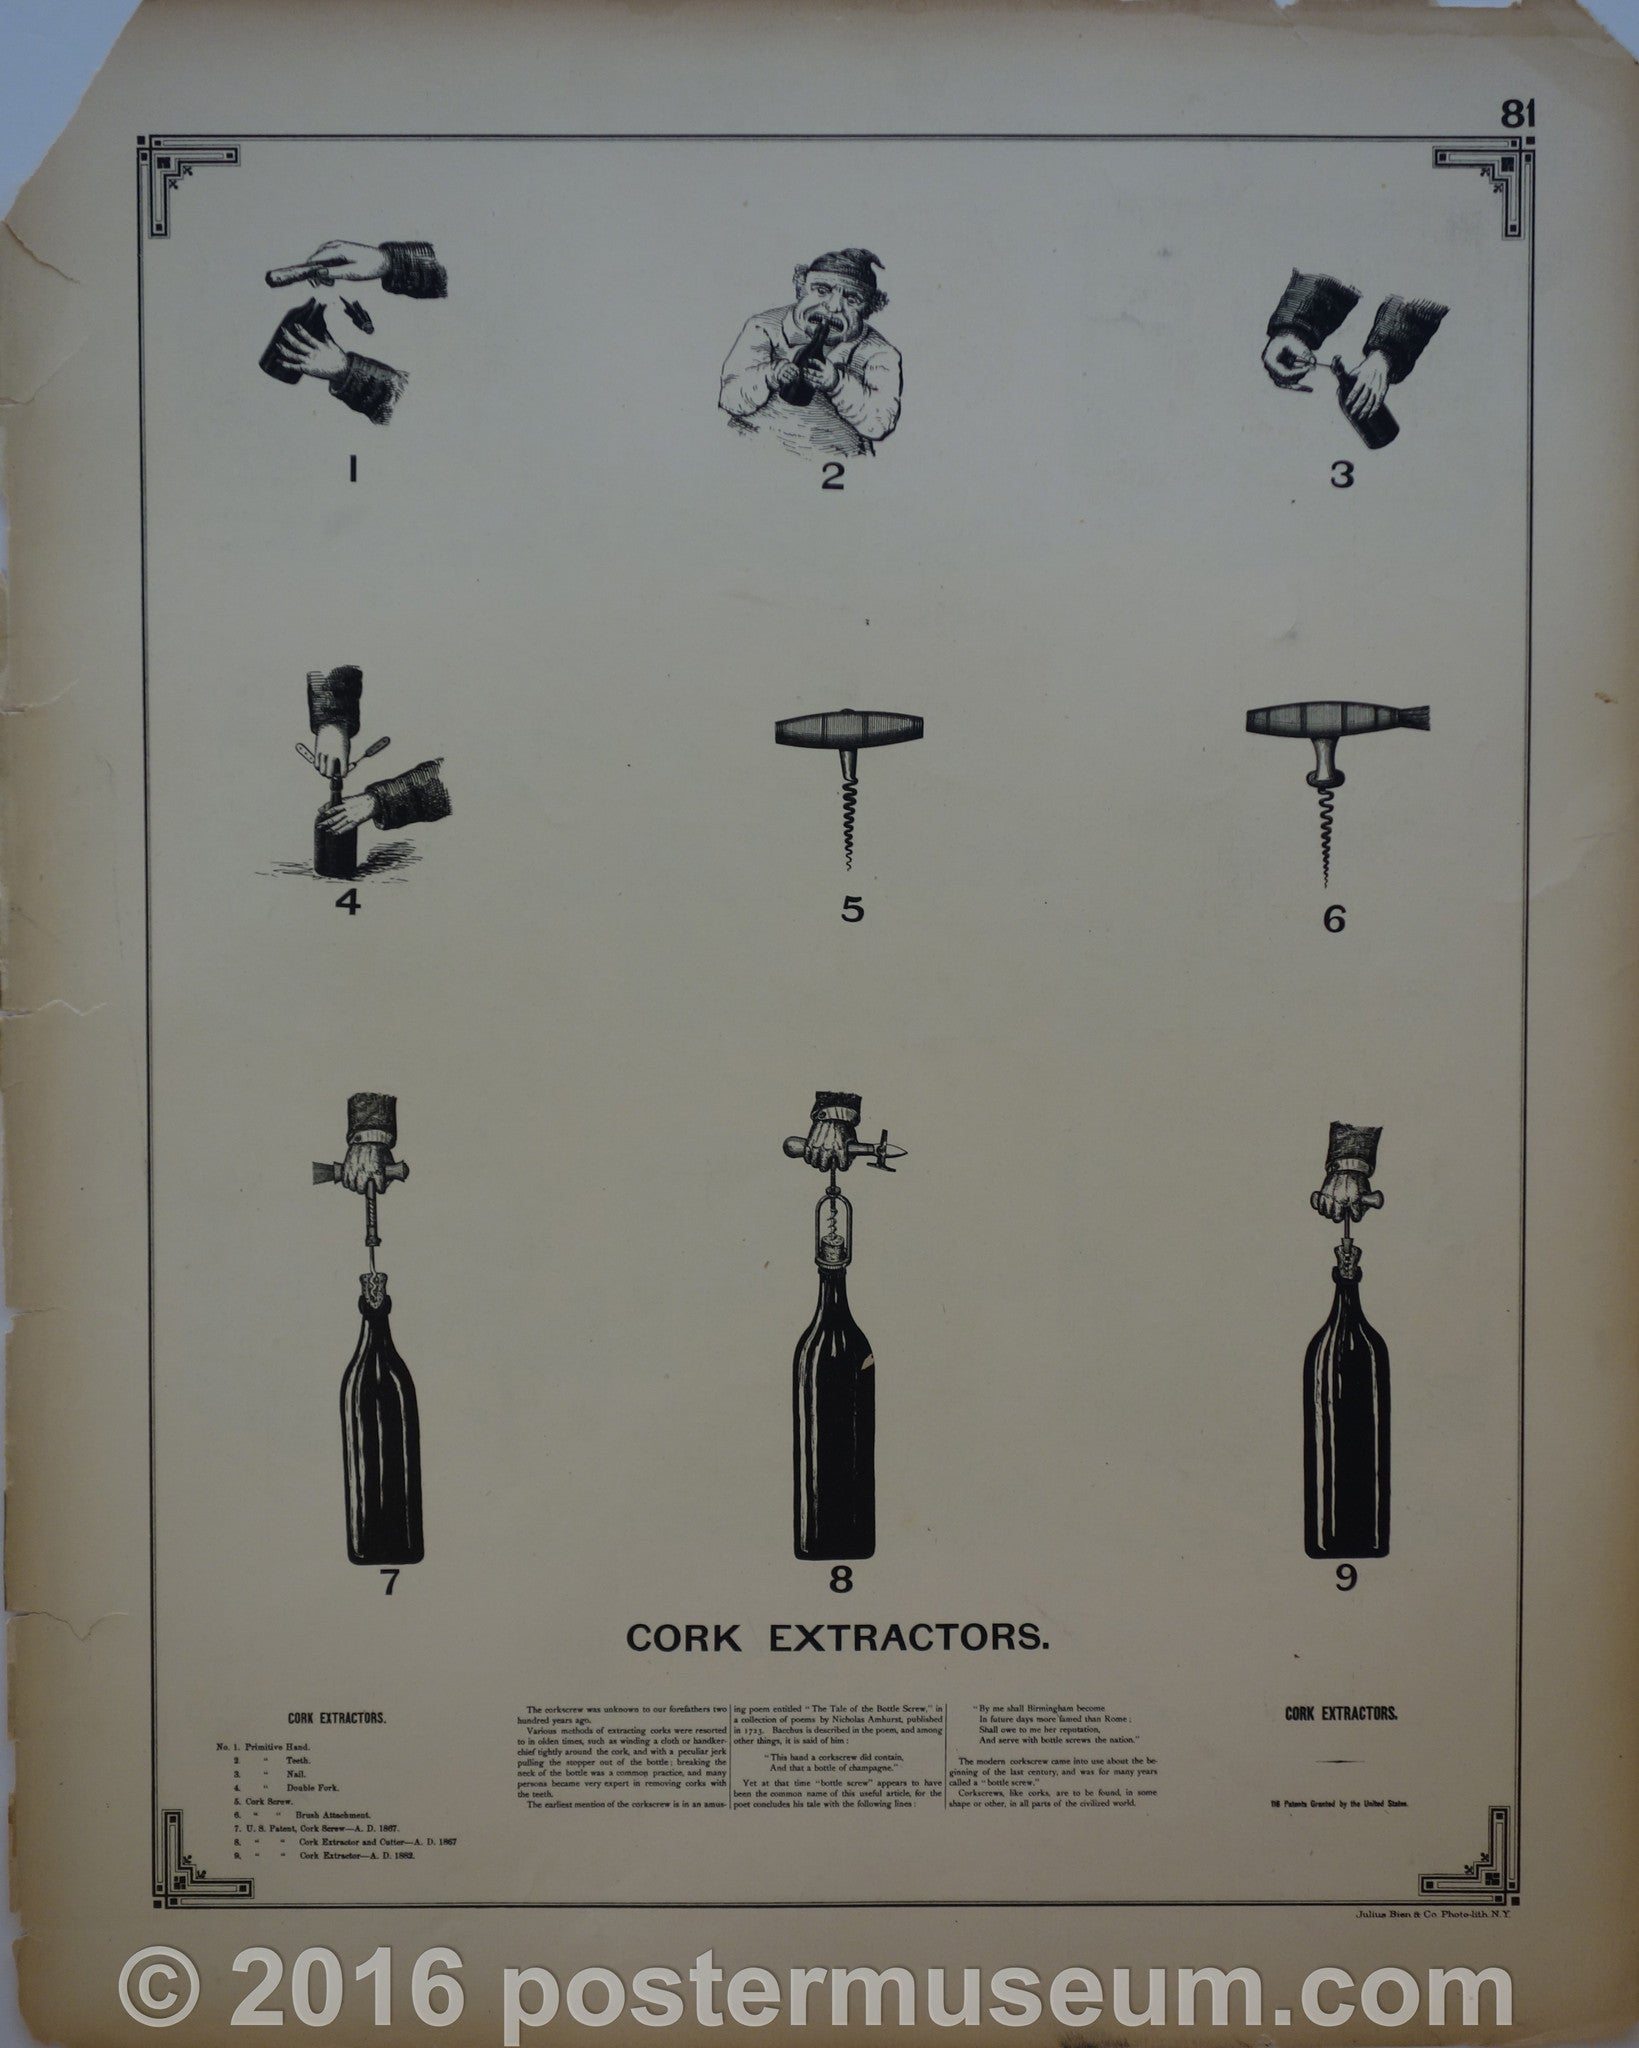 Cork extractors and Ironing